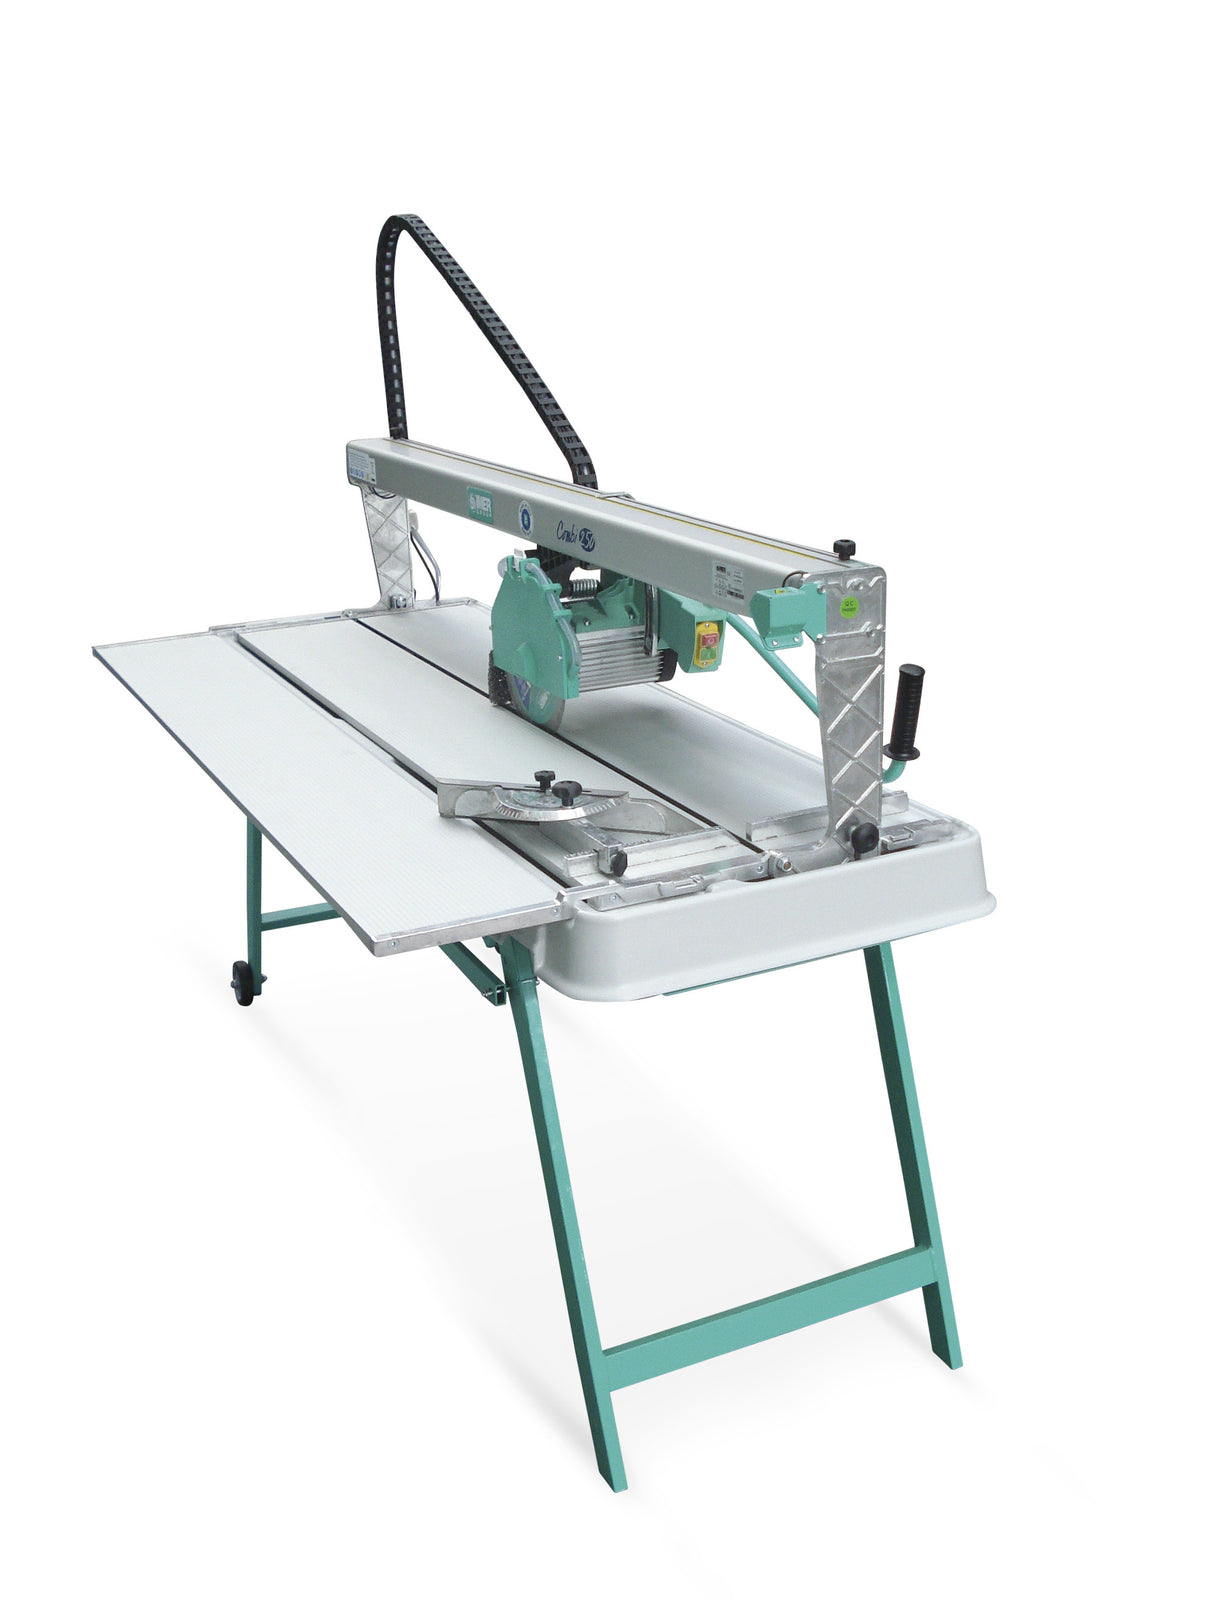 "IMER Combi 250/1500 10"" blade 57"" cutting length precision ultra large format tile and slabe saw tilts to miter cut with side table and stand"